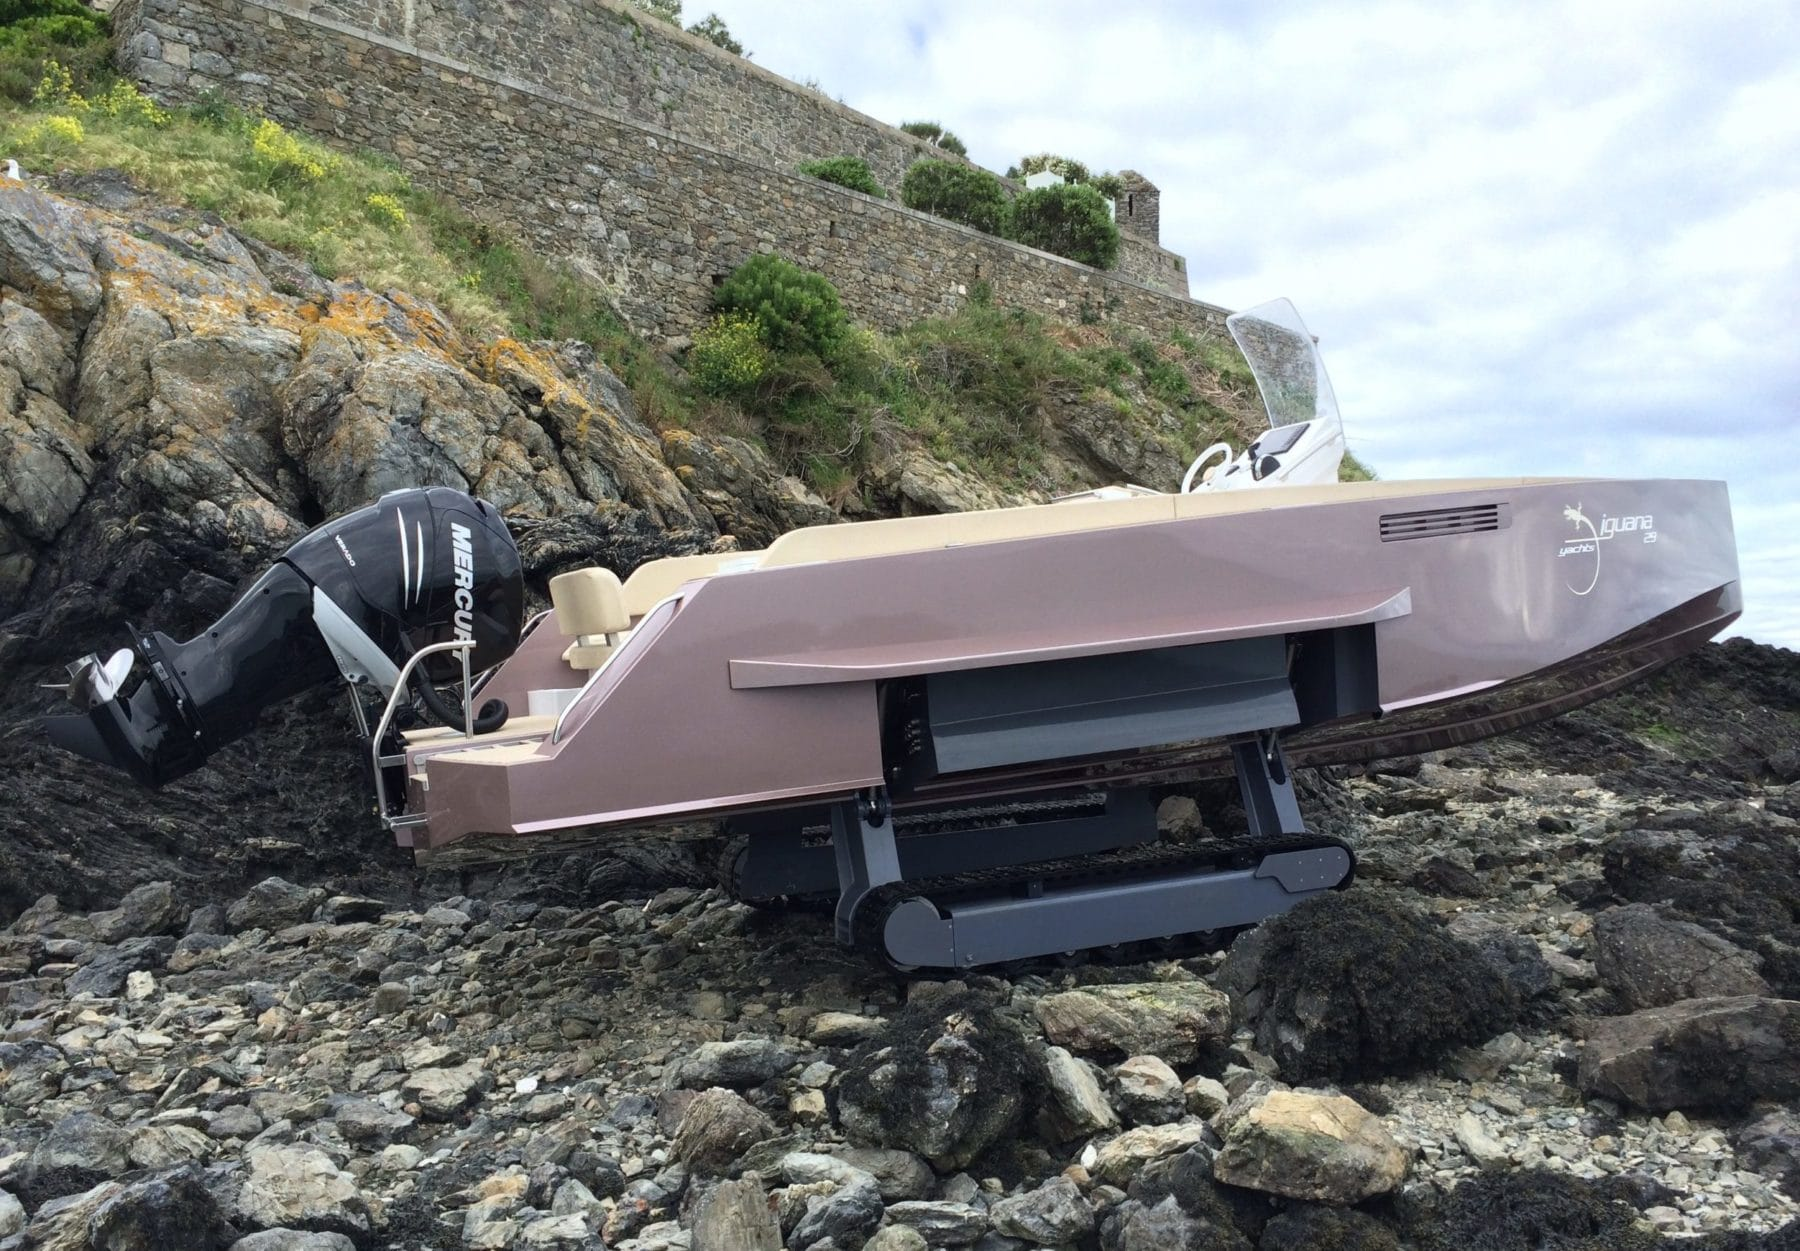 Boat that drives on rocks